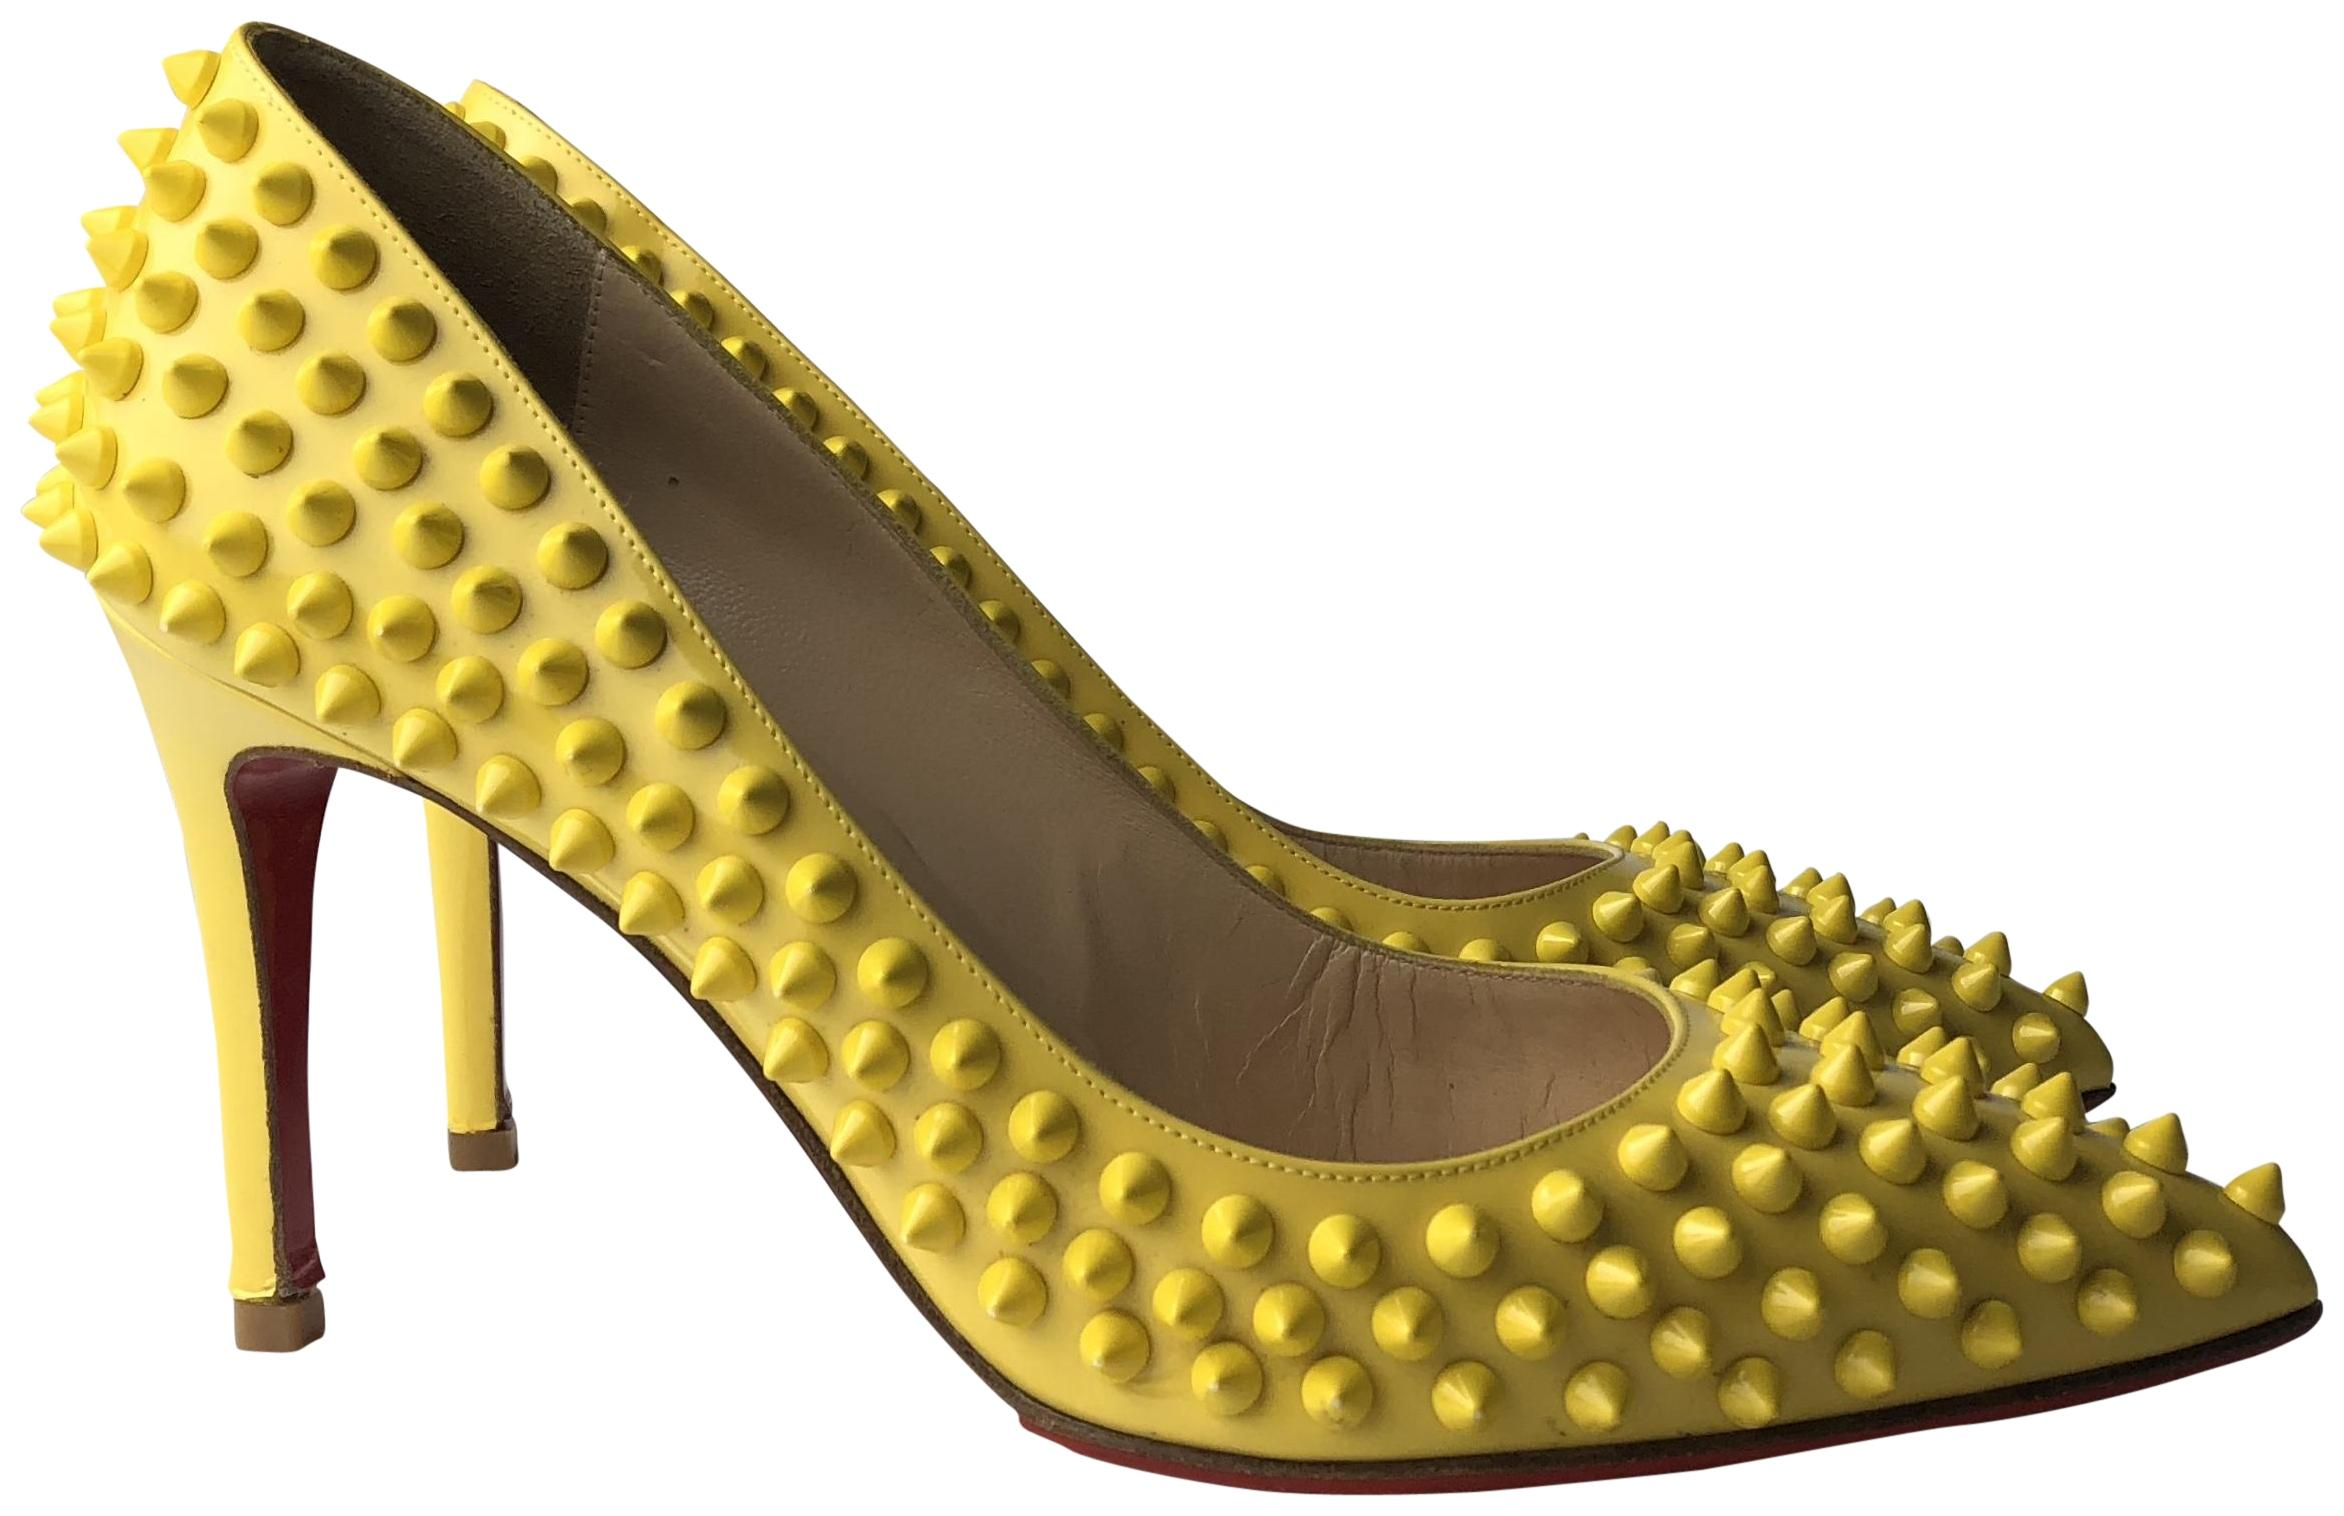 8423e5c6ab80 Christian Christian Christian Louboutin Yellow Pigalle 85 Spikes Patent  Leather Pumps Size EU 37 (Approx